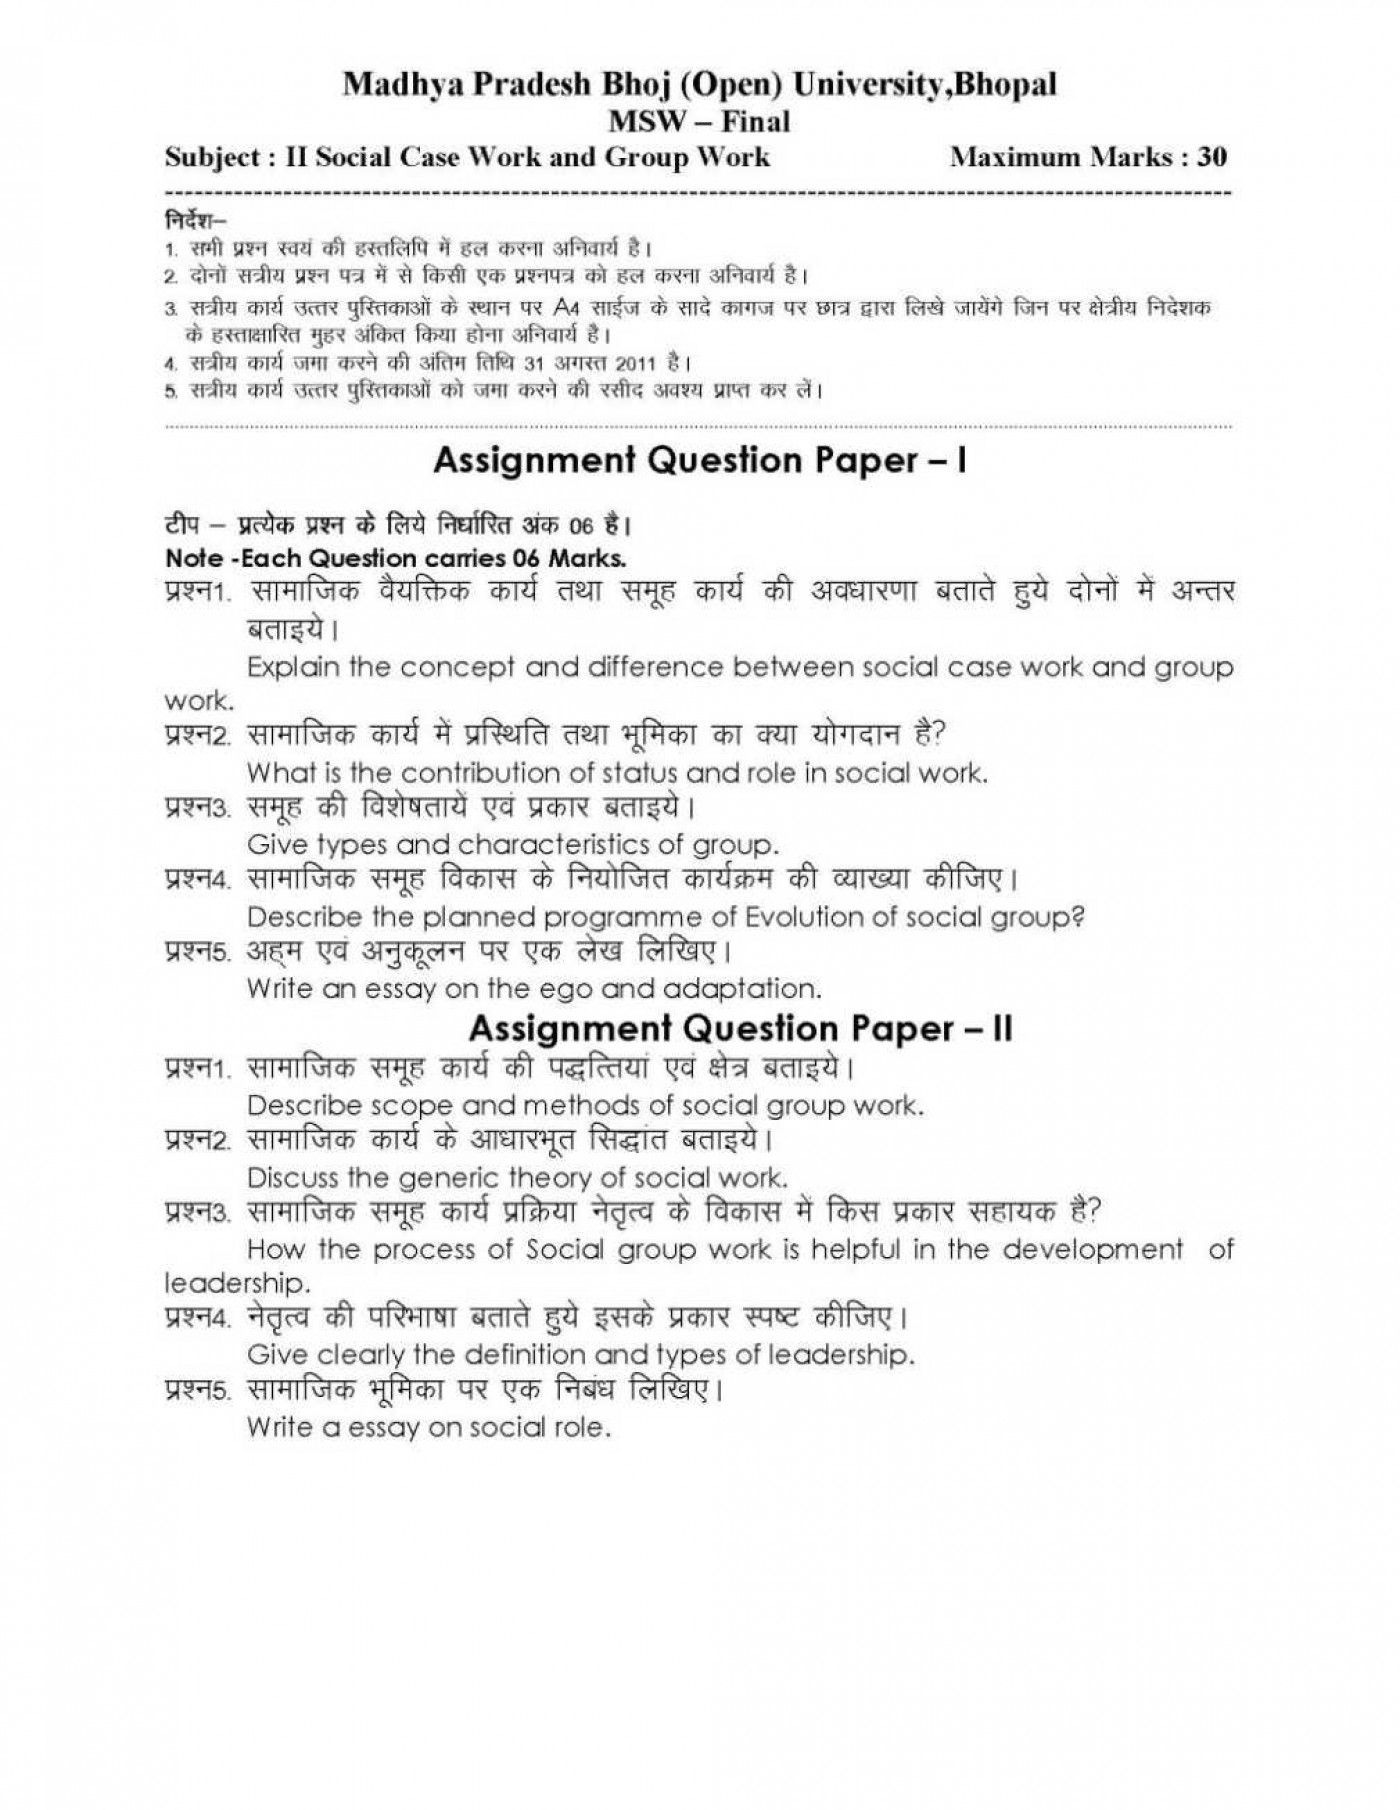 012 Bhoj University Bhopal Msw Definition Essays Surprising Essay Examples Friendship Define Writing Pdf 1400